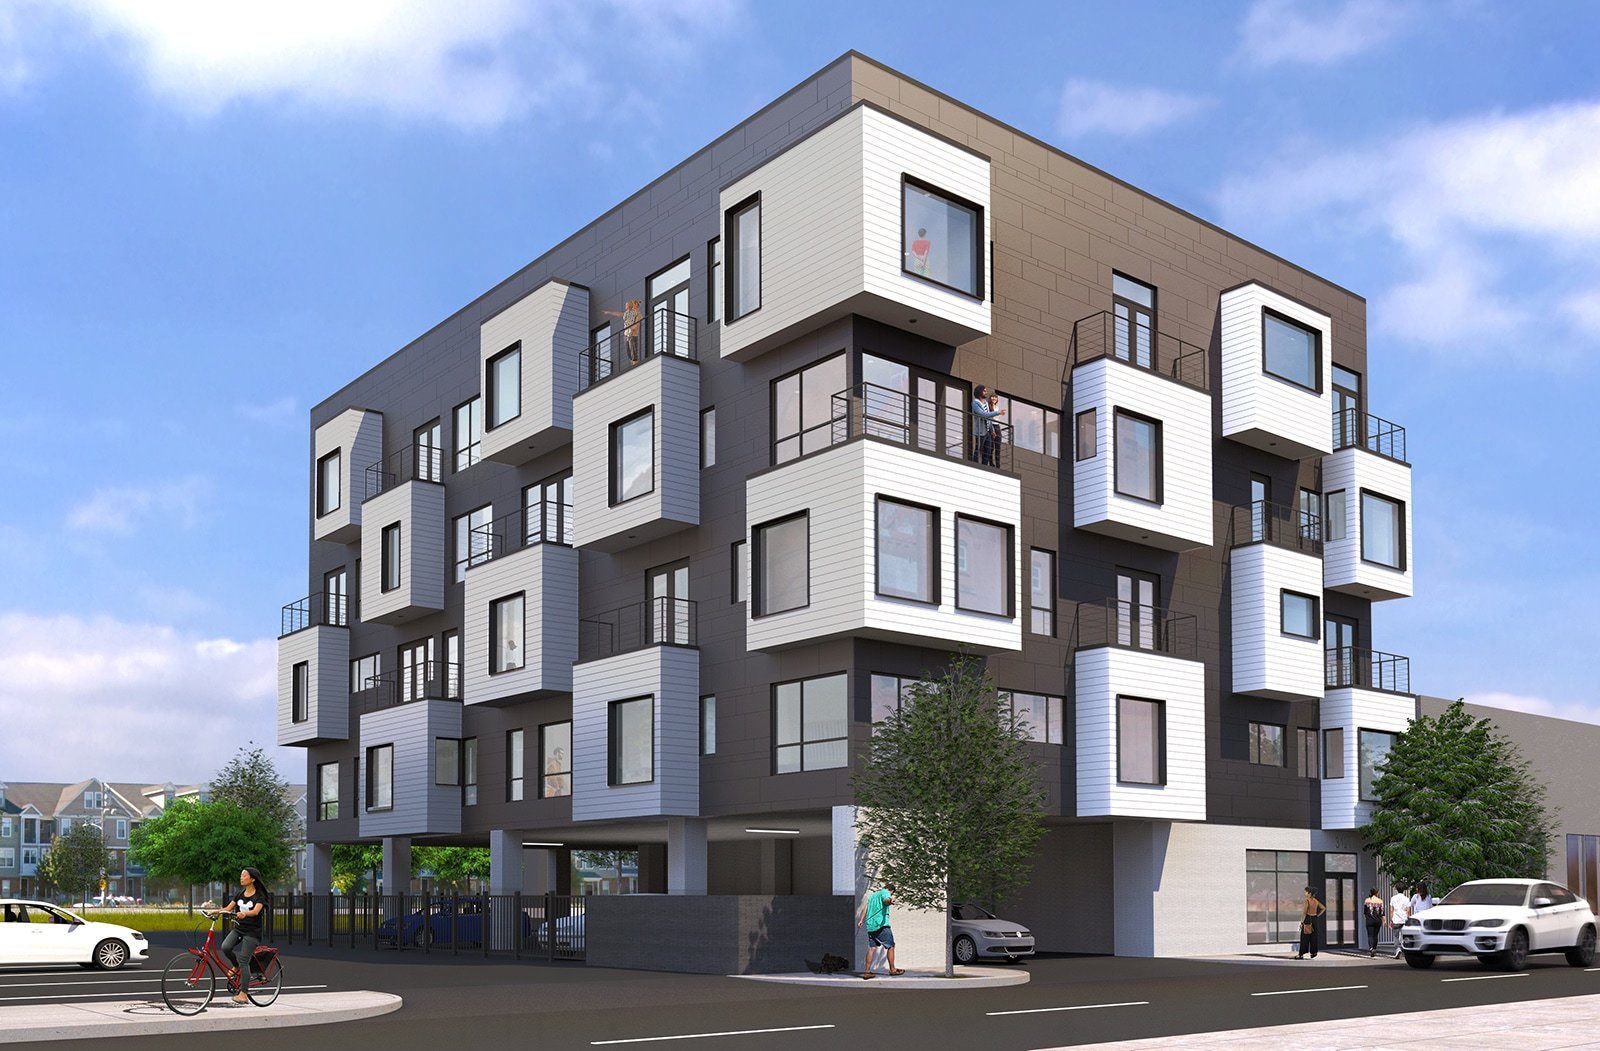 3120-W-Jefferson-Rendering-1_2_2019.jpg